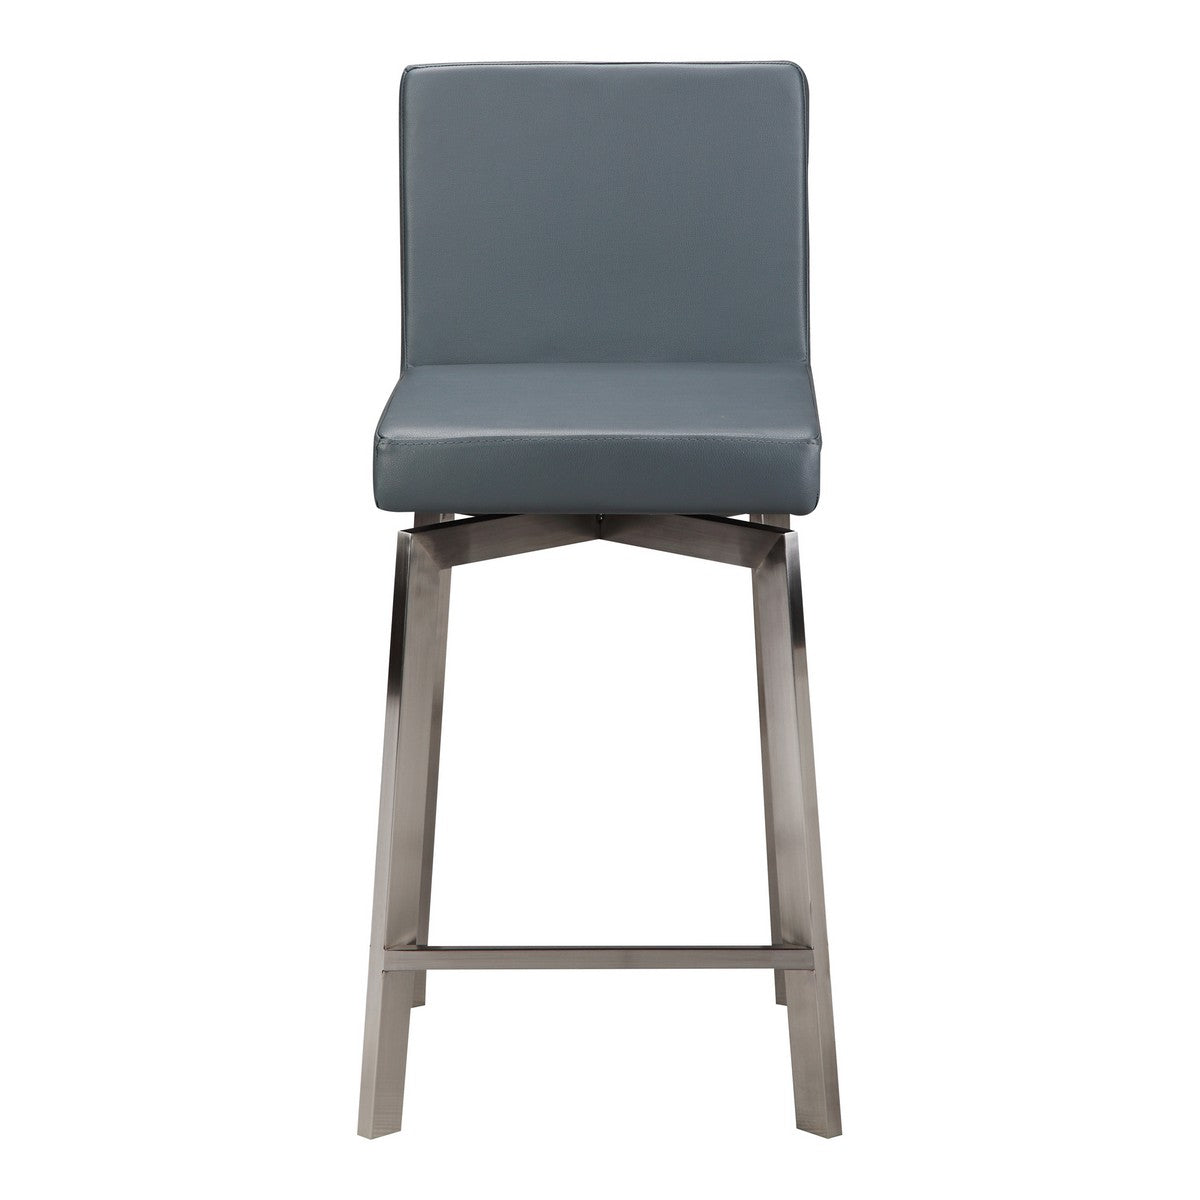 Moe's Home Collection Giro Swivel Counter Stool Grey - EH-1039-25 - Moe's Home Collection - Counter Stools - Minimal And Modern - 1